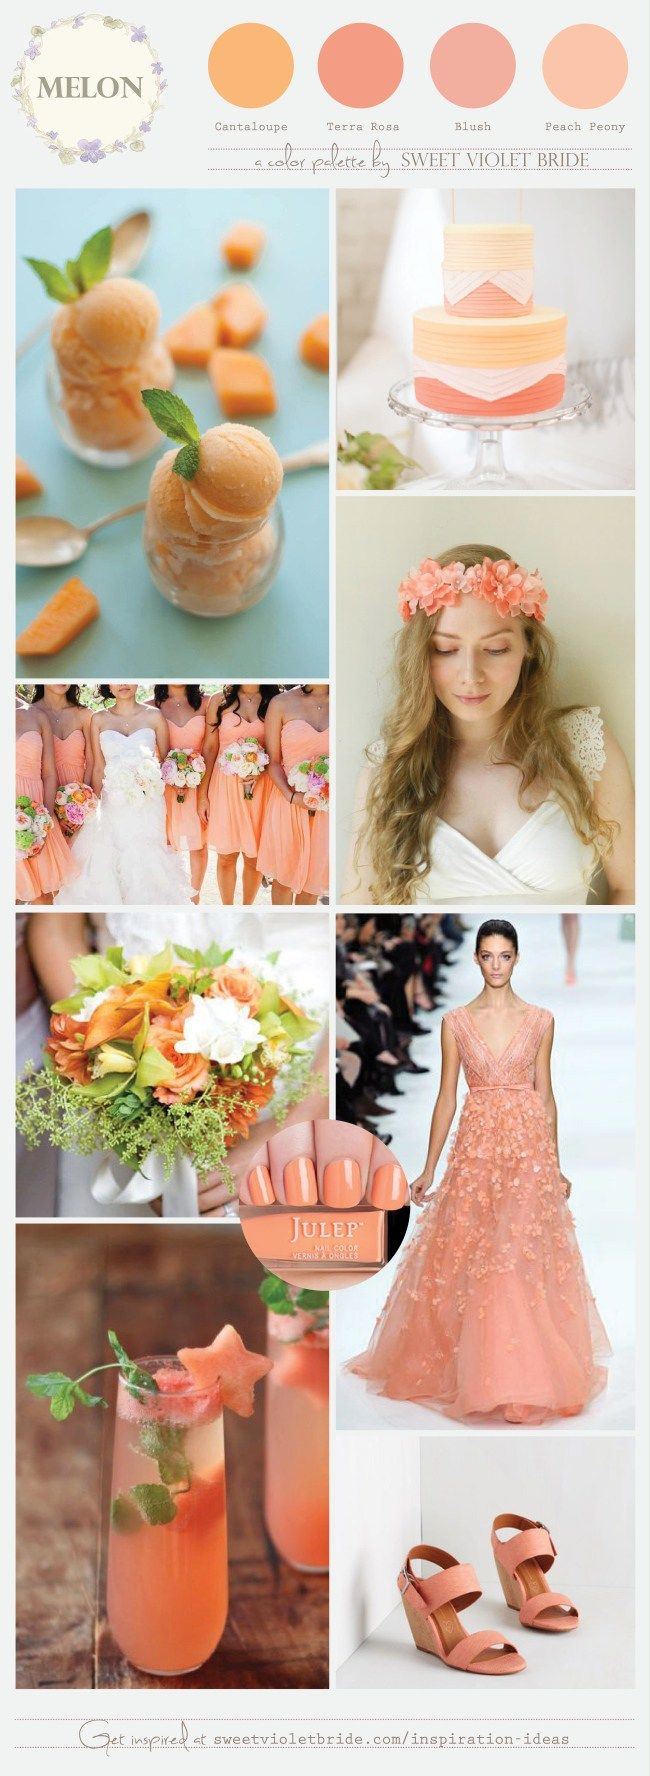 Melon is a beautiful color choice for spring and summer weddings, but you can also incorporate the fruit into your menu with pretty cocktails and treats such as cantaloupe sorbet! It pairs well with blush and mint colors as well as gold, silver, rose gold etc